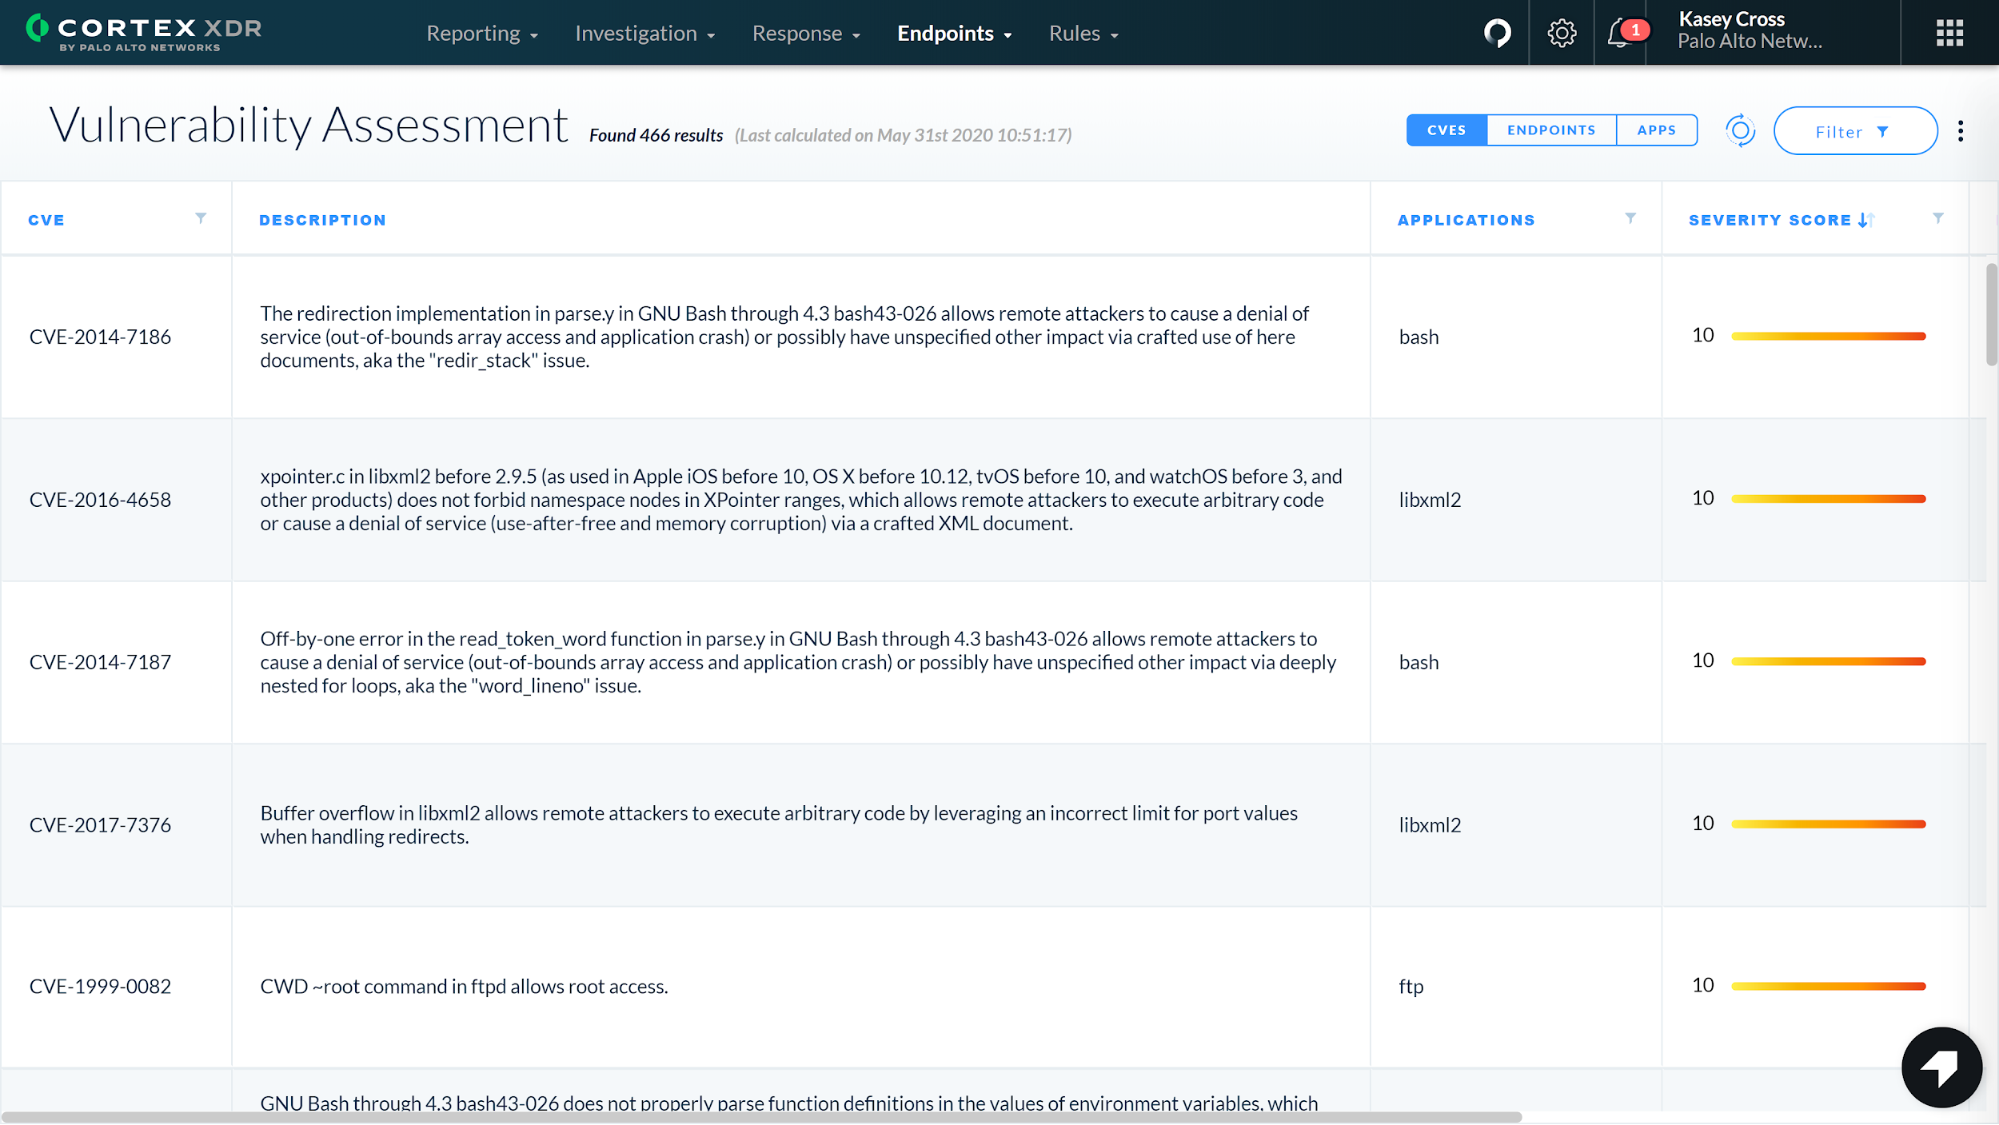 This screenshot shows the vulnerability assessment view in Cortex XDR 2.4